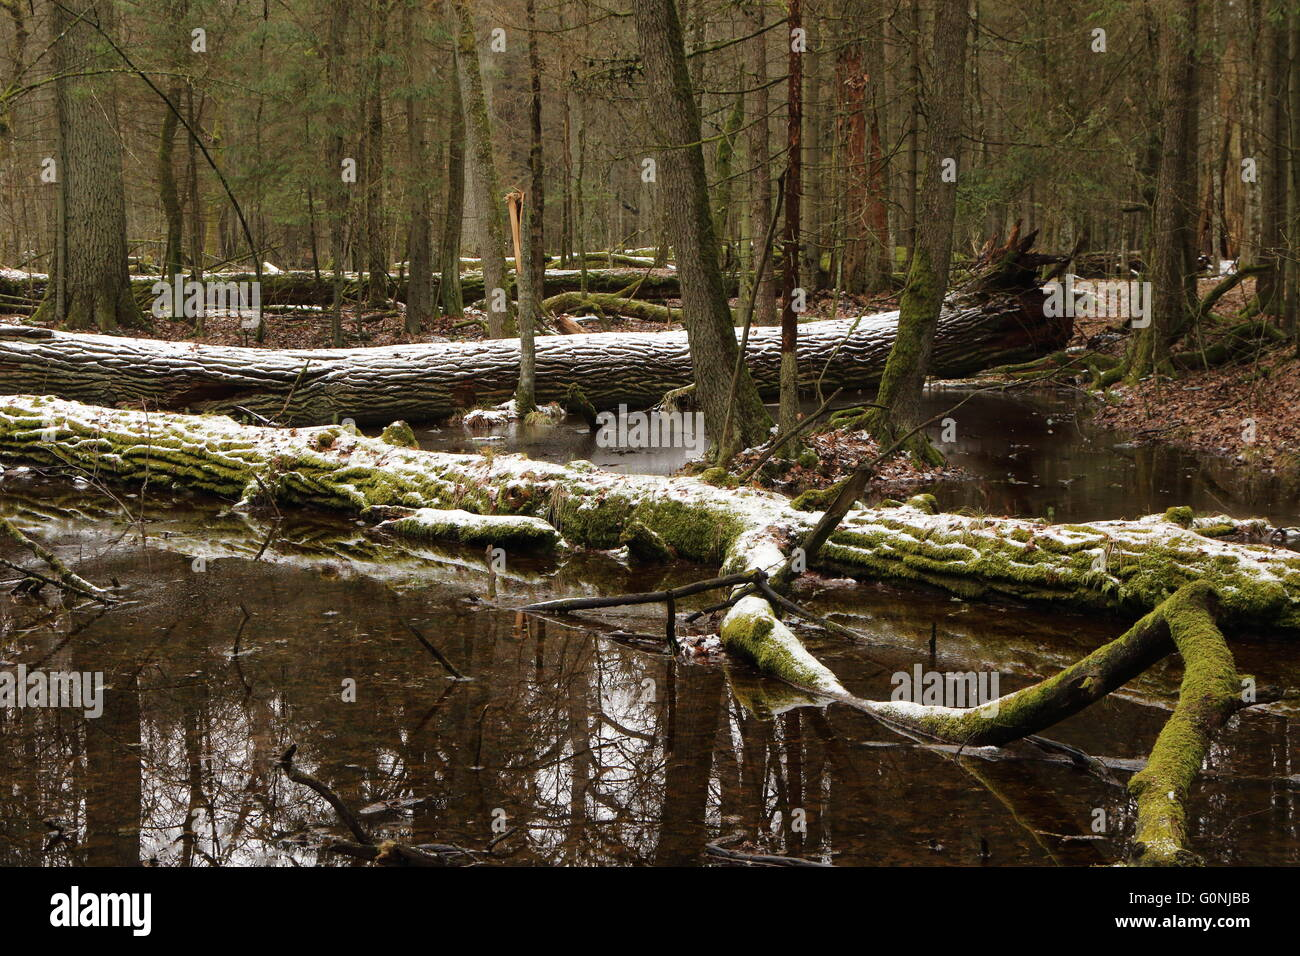 Spring landscape of old forest and broken trees lying in melting snow and water,Bialowieza Forest,Poland,Europe - Stock Image